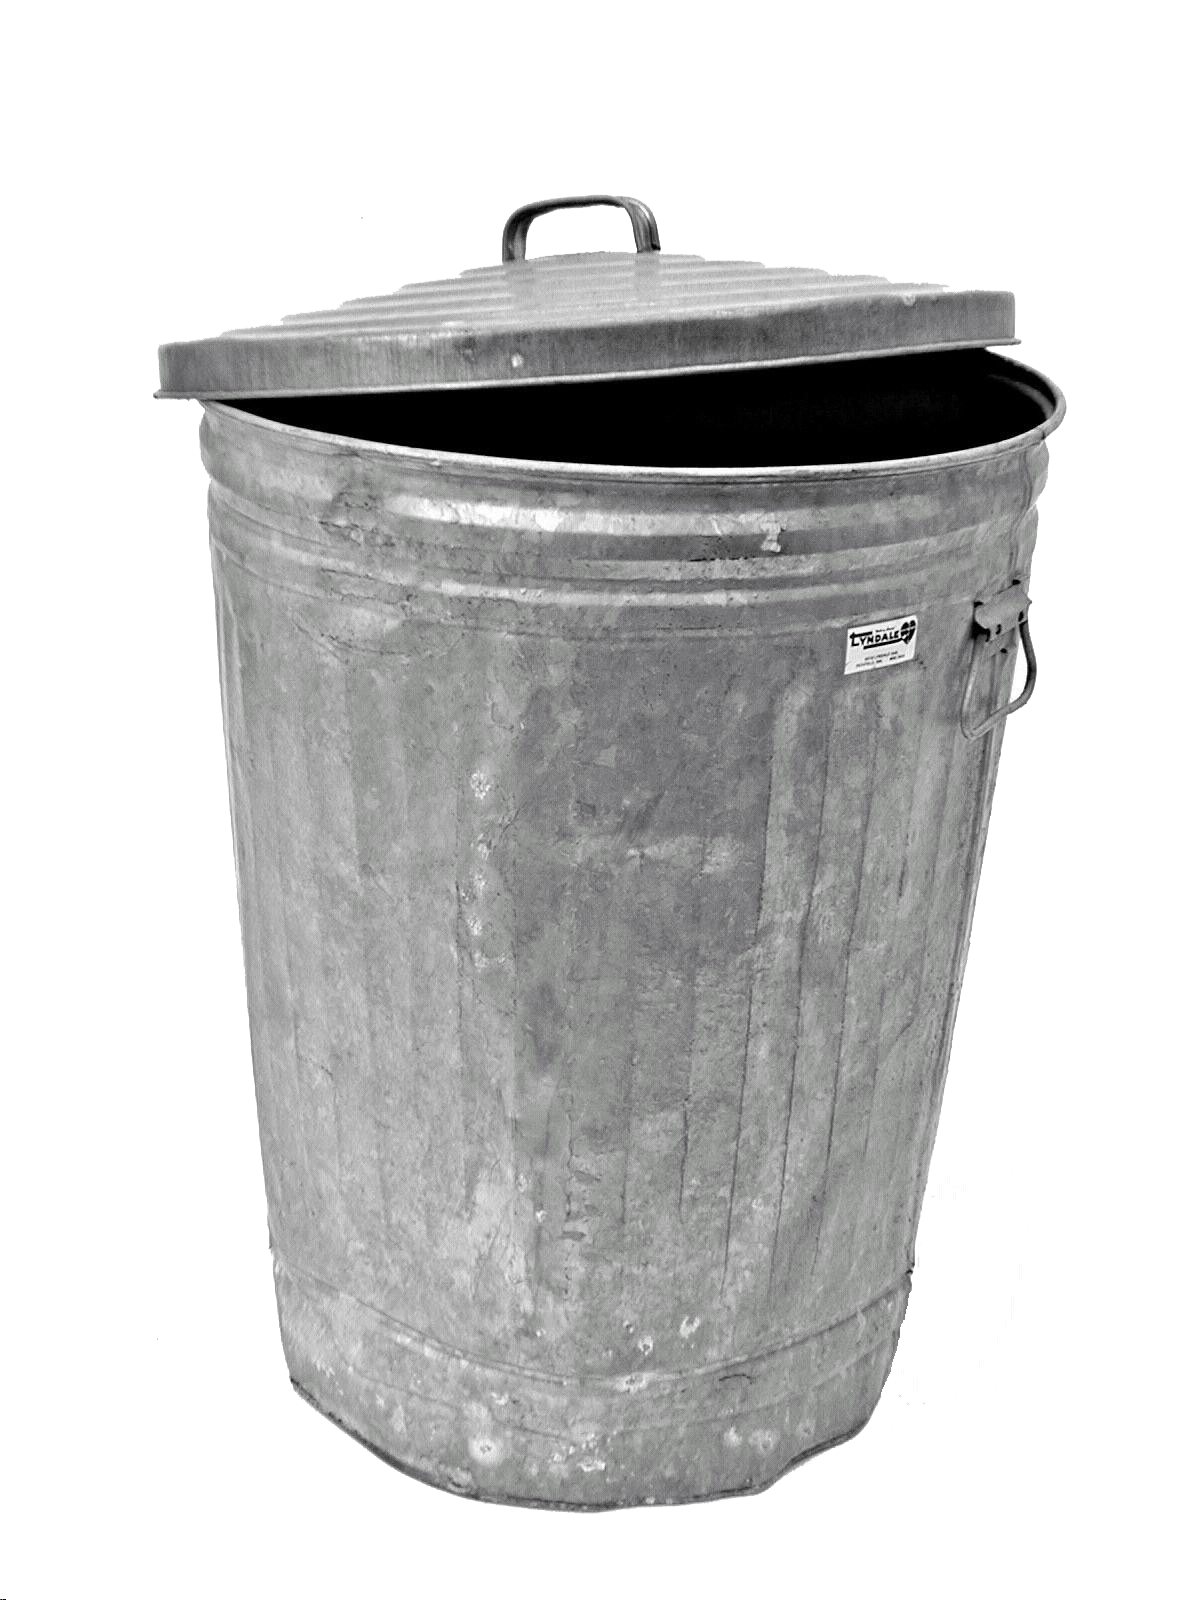 Transparent trashcan. Trash can metal png